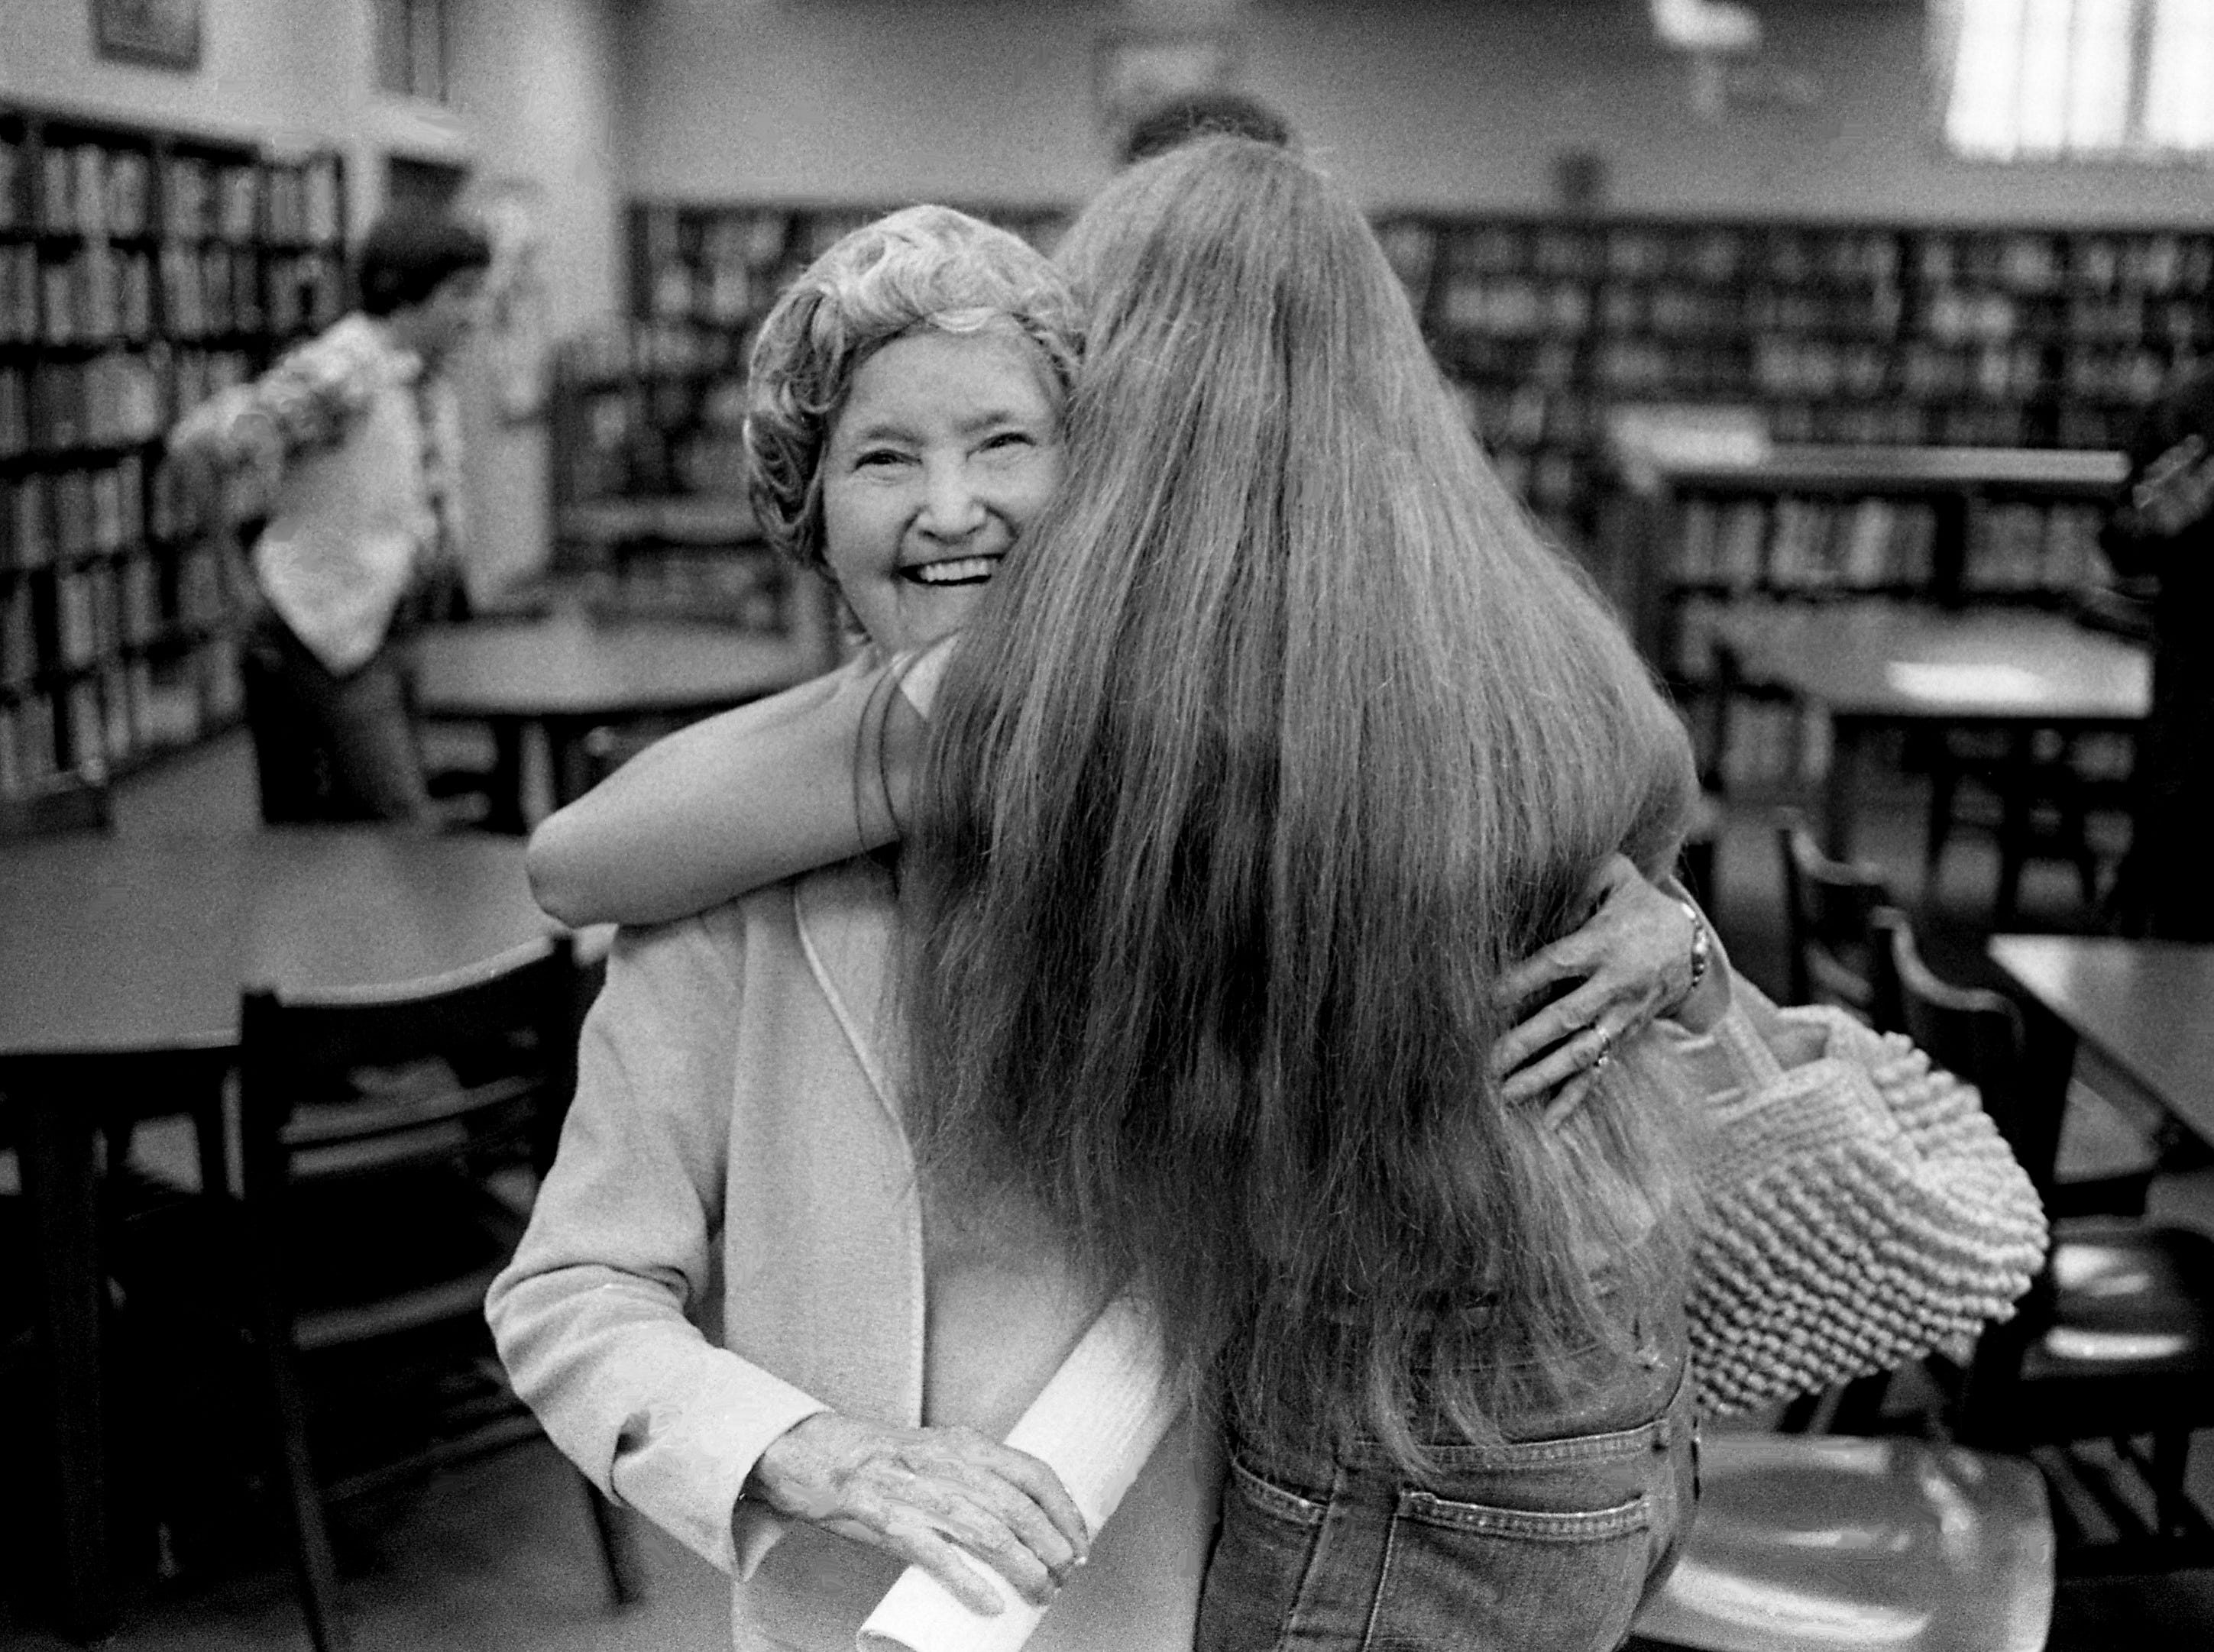 """Mrs. Mona Prowell, left, and Mount Juliet High School student Lisa Lafevor embrace jubilantly as the school day ends April 25, 1979. Senior citizens are making three-day visits to the Wilson County schools for the """"Senior-Senior Days"""" program."""